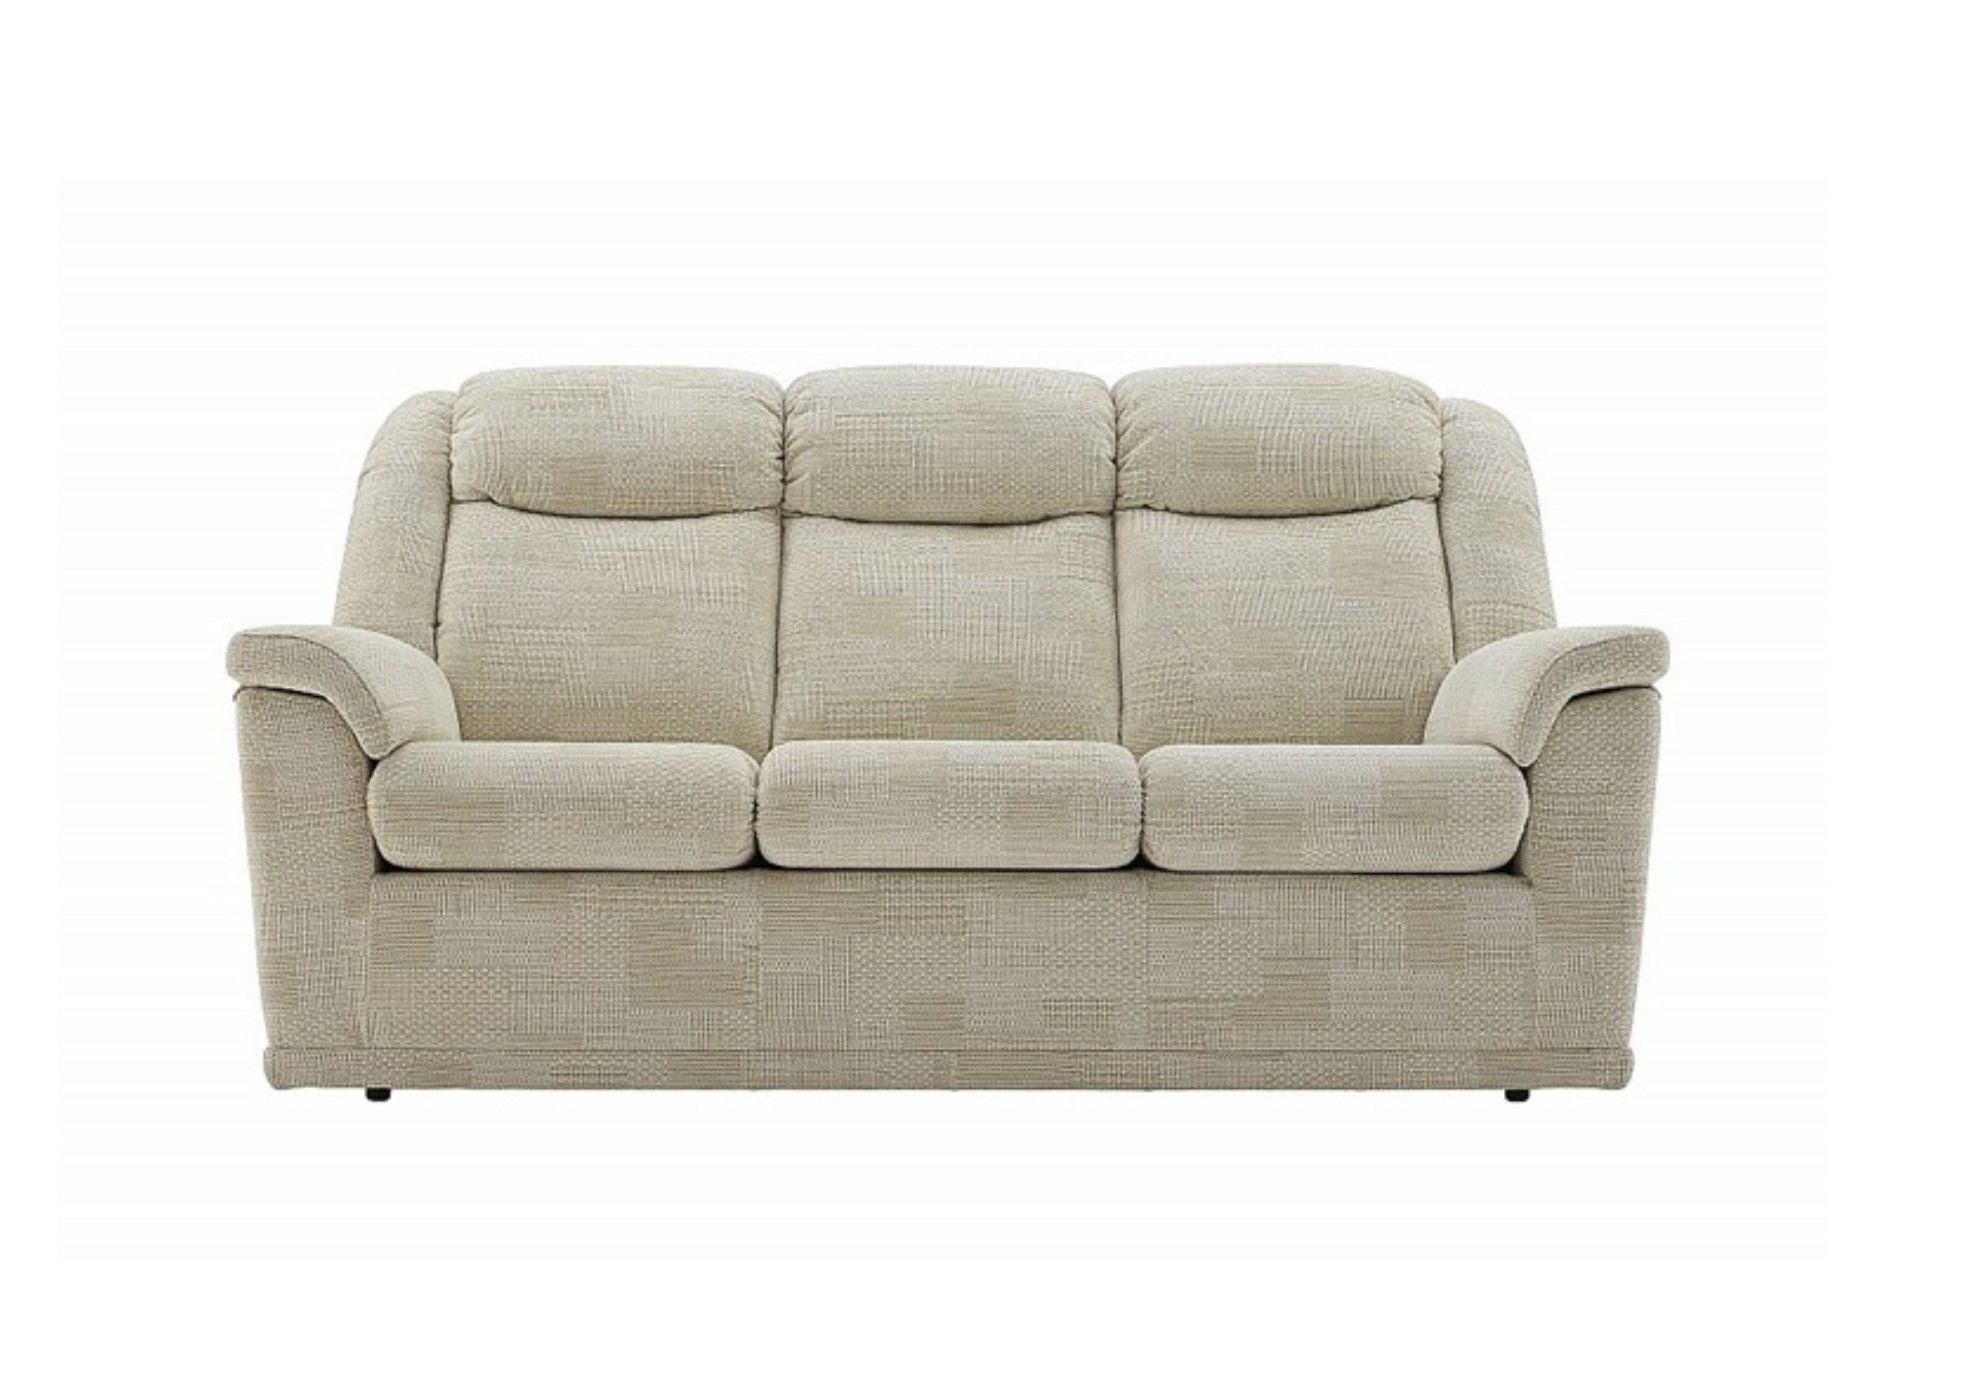 Milton 3 Seater Sofa leather fabric gplan donaldsons furnishers